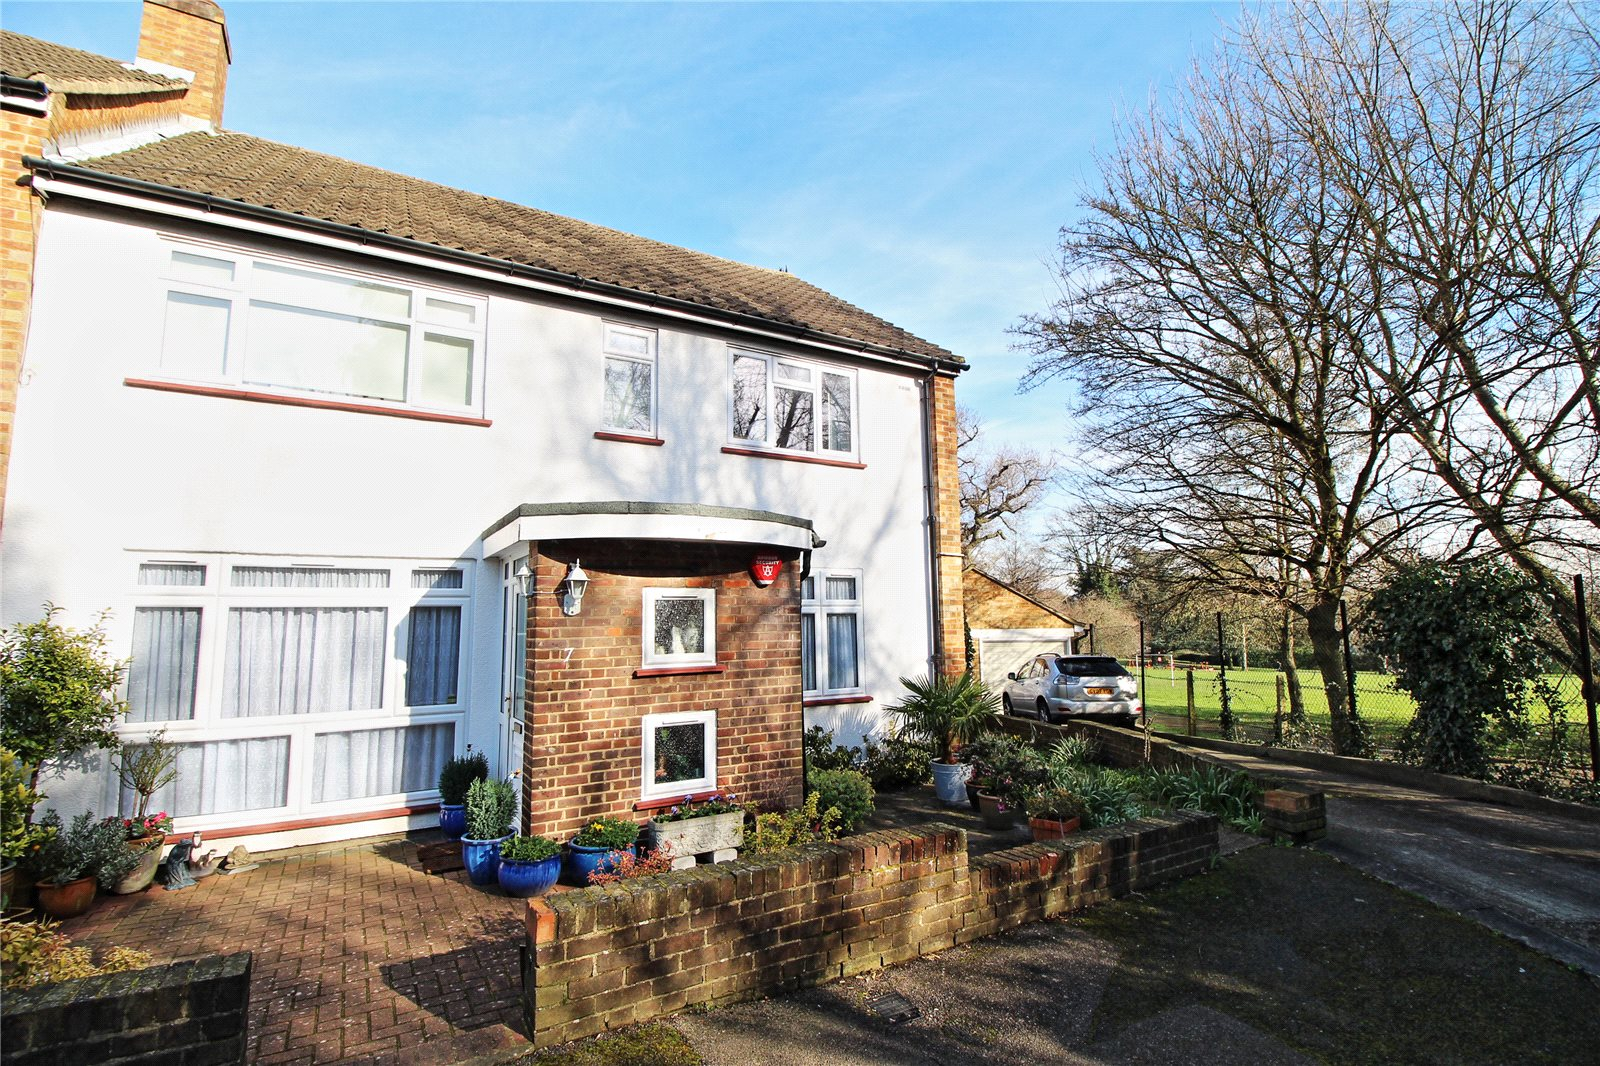 2 Bedrooms Maisonette Flat for sale in Stangate Gardens Stanmore Middlesex HA7